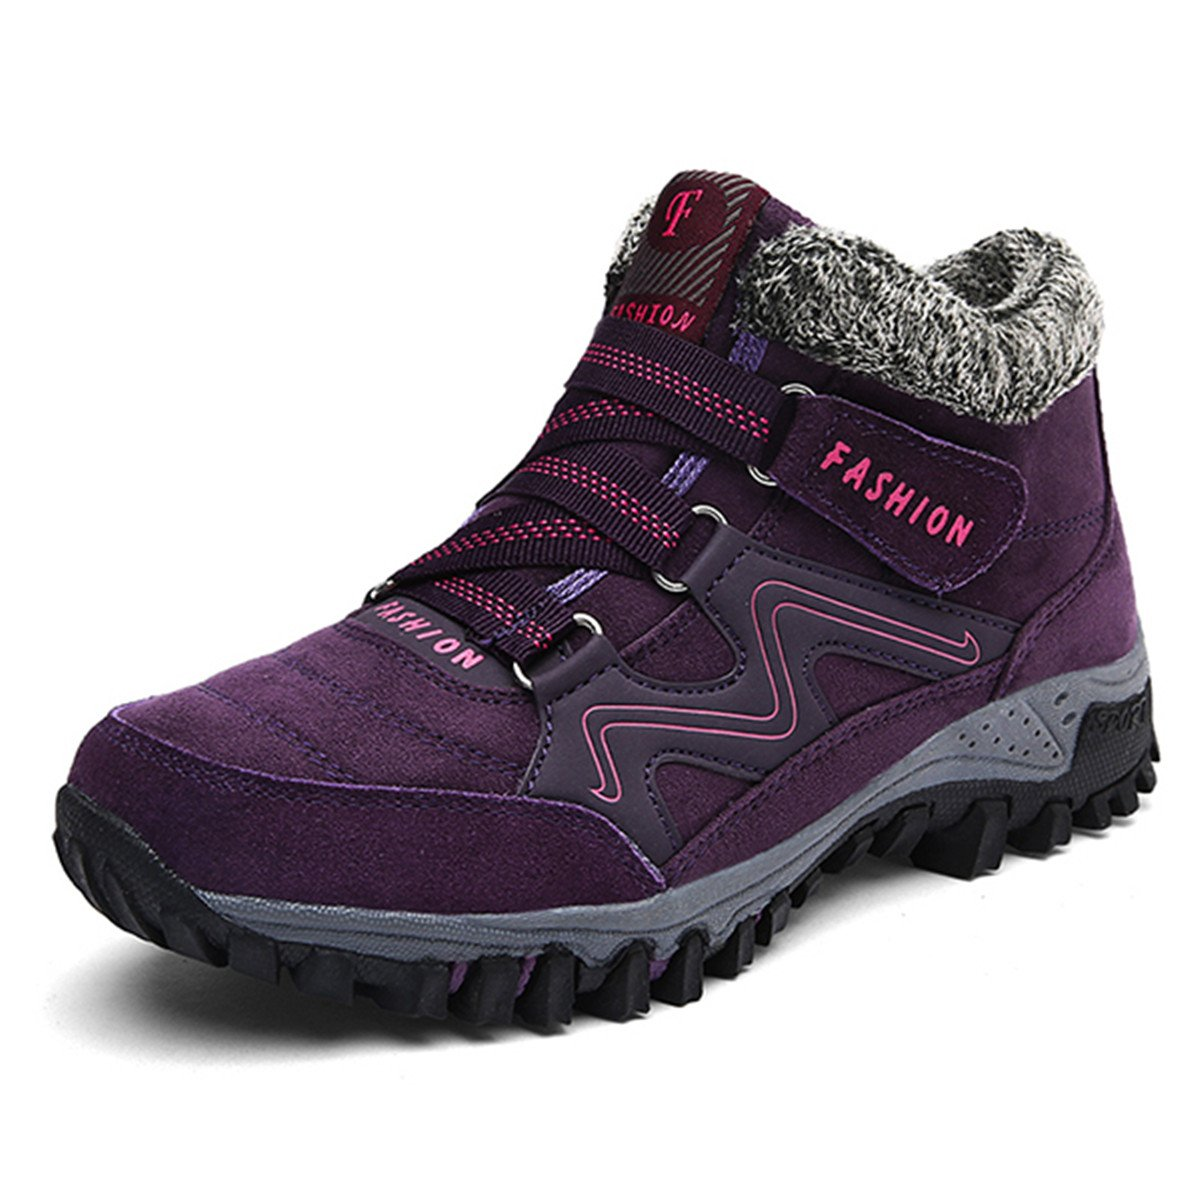 gracosy High Top Sneaker, Women Winter Warm Hook Loop Snow Shoes Fur Lining Casual Boots Ankle Bootie Purple 8 B(M) US